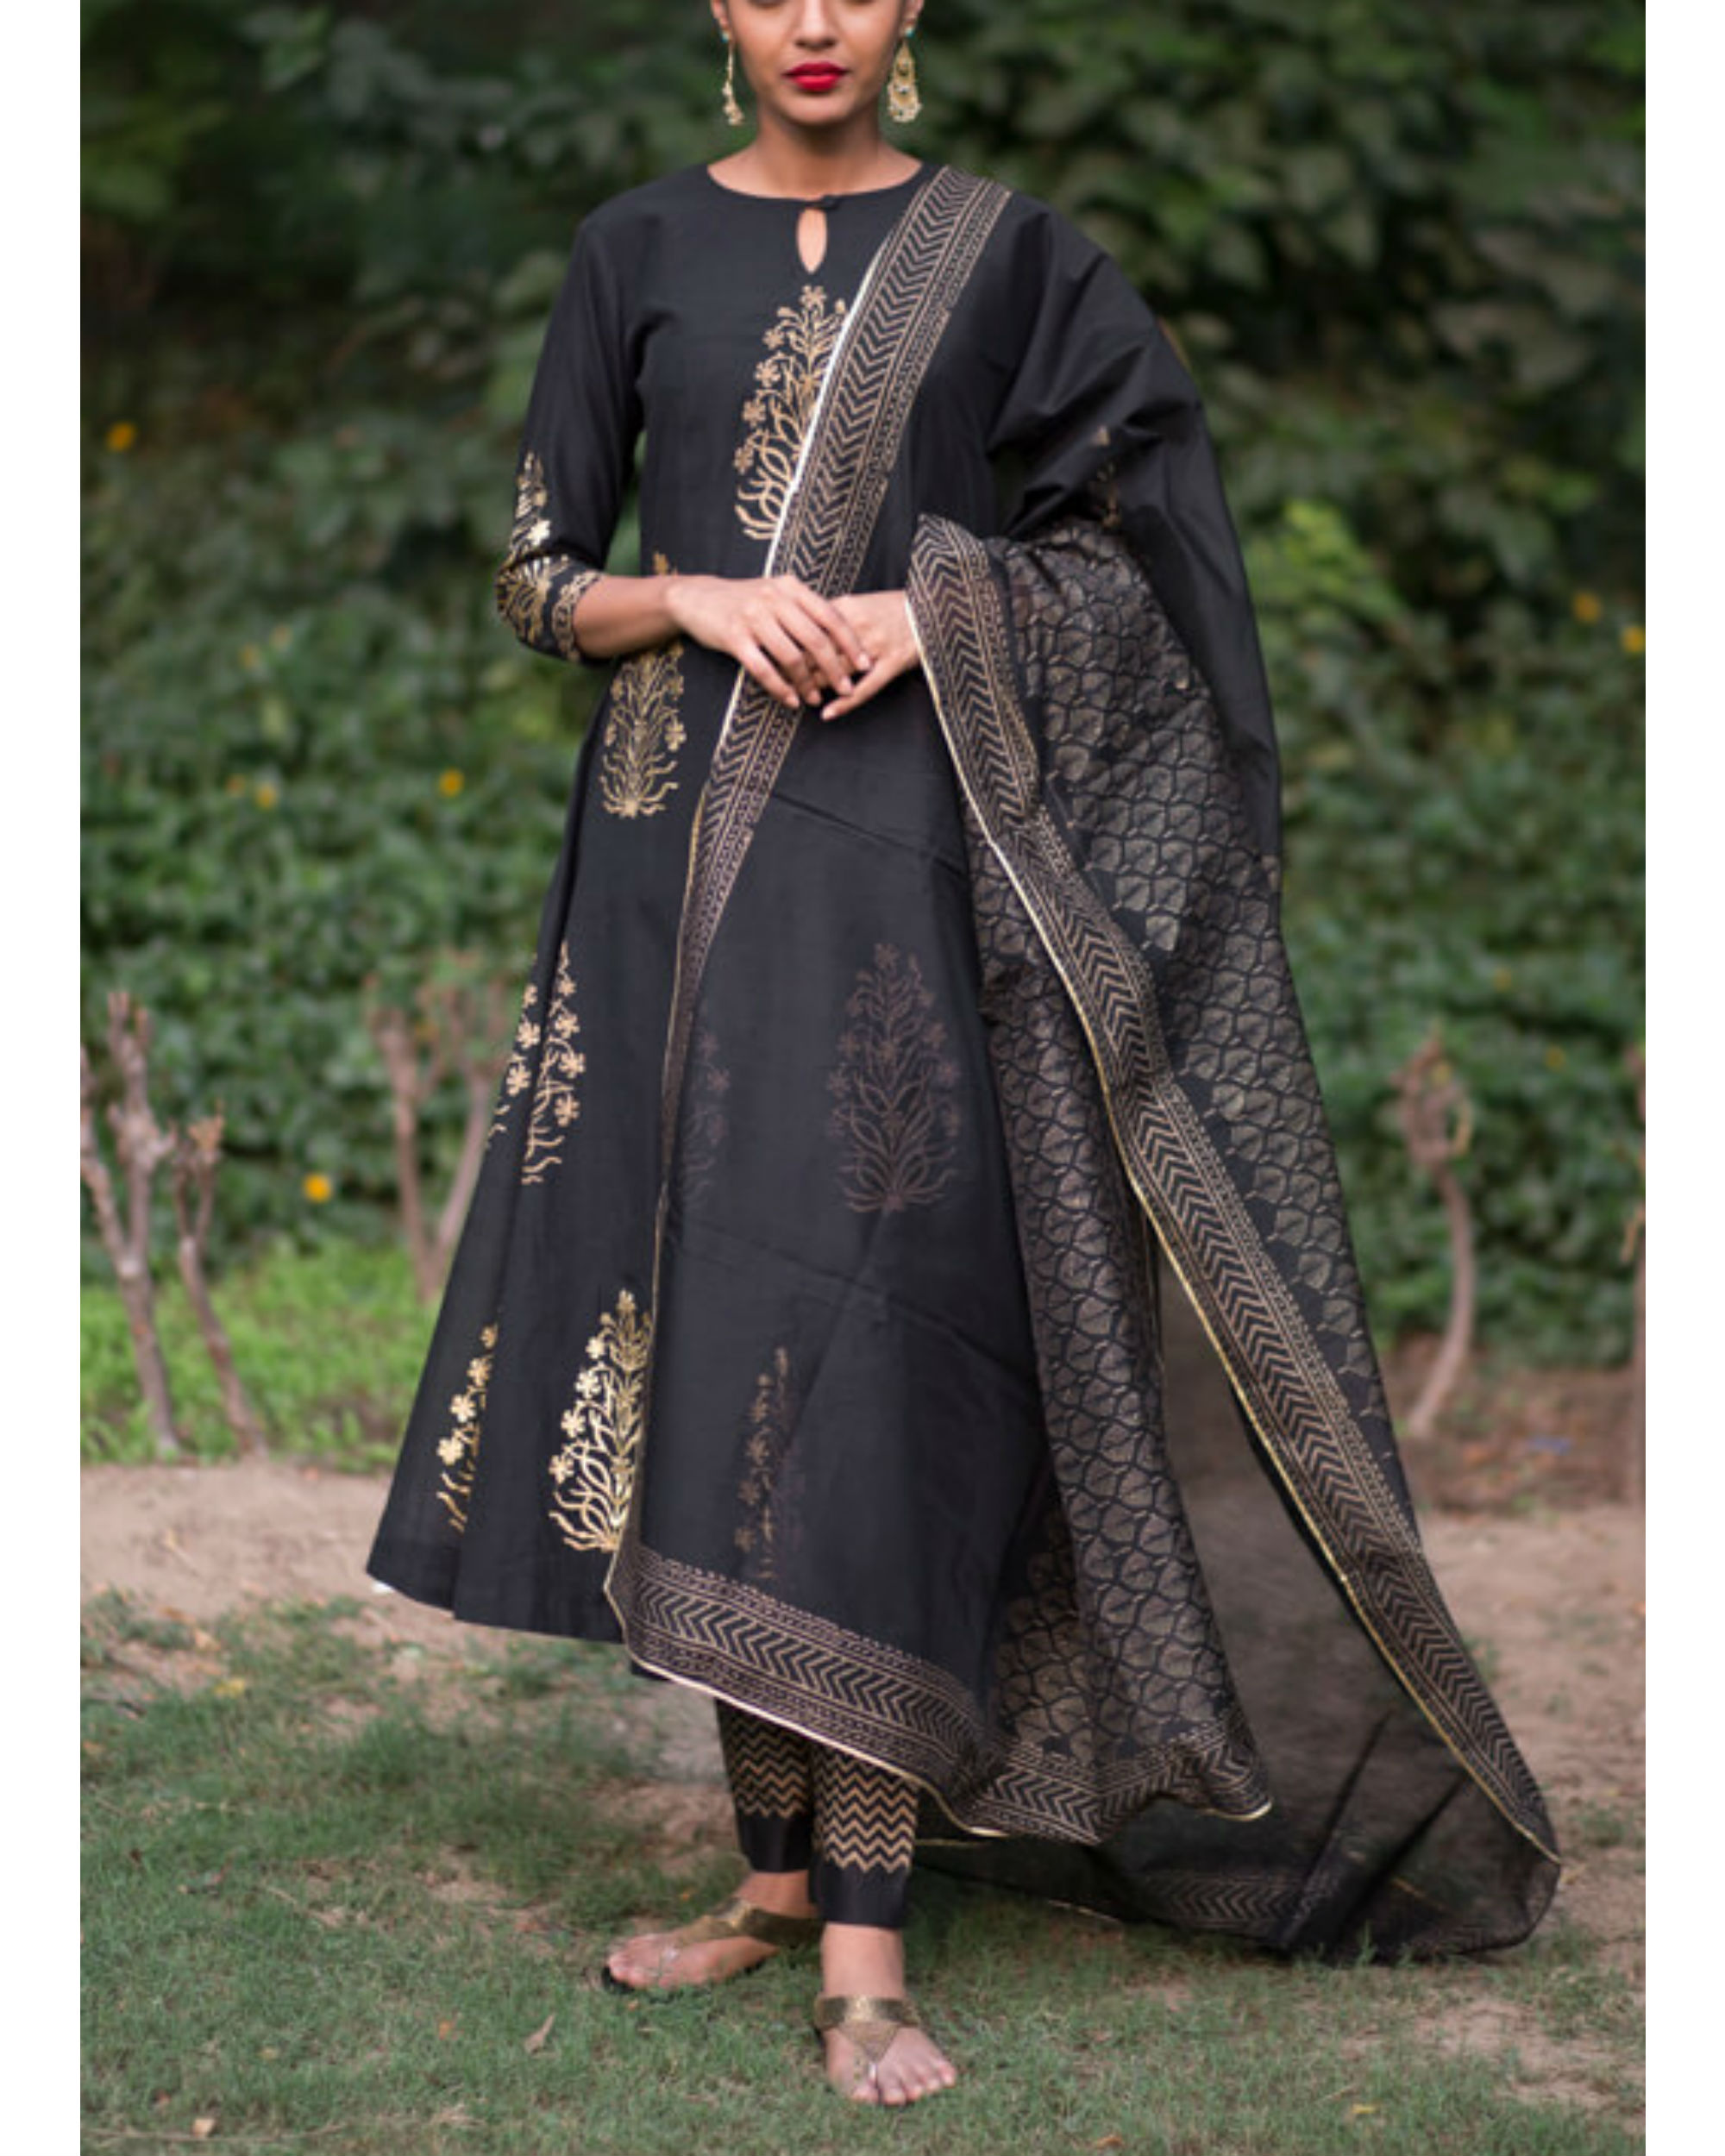 Ahilaya phool kurta set with black mughal bootah dupatta